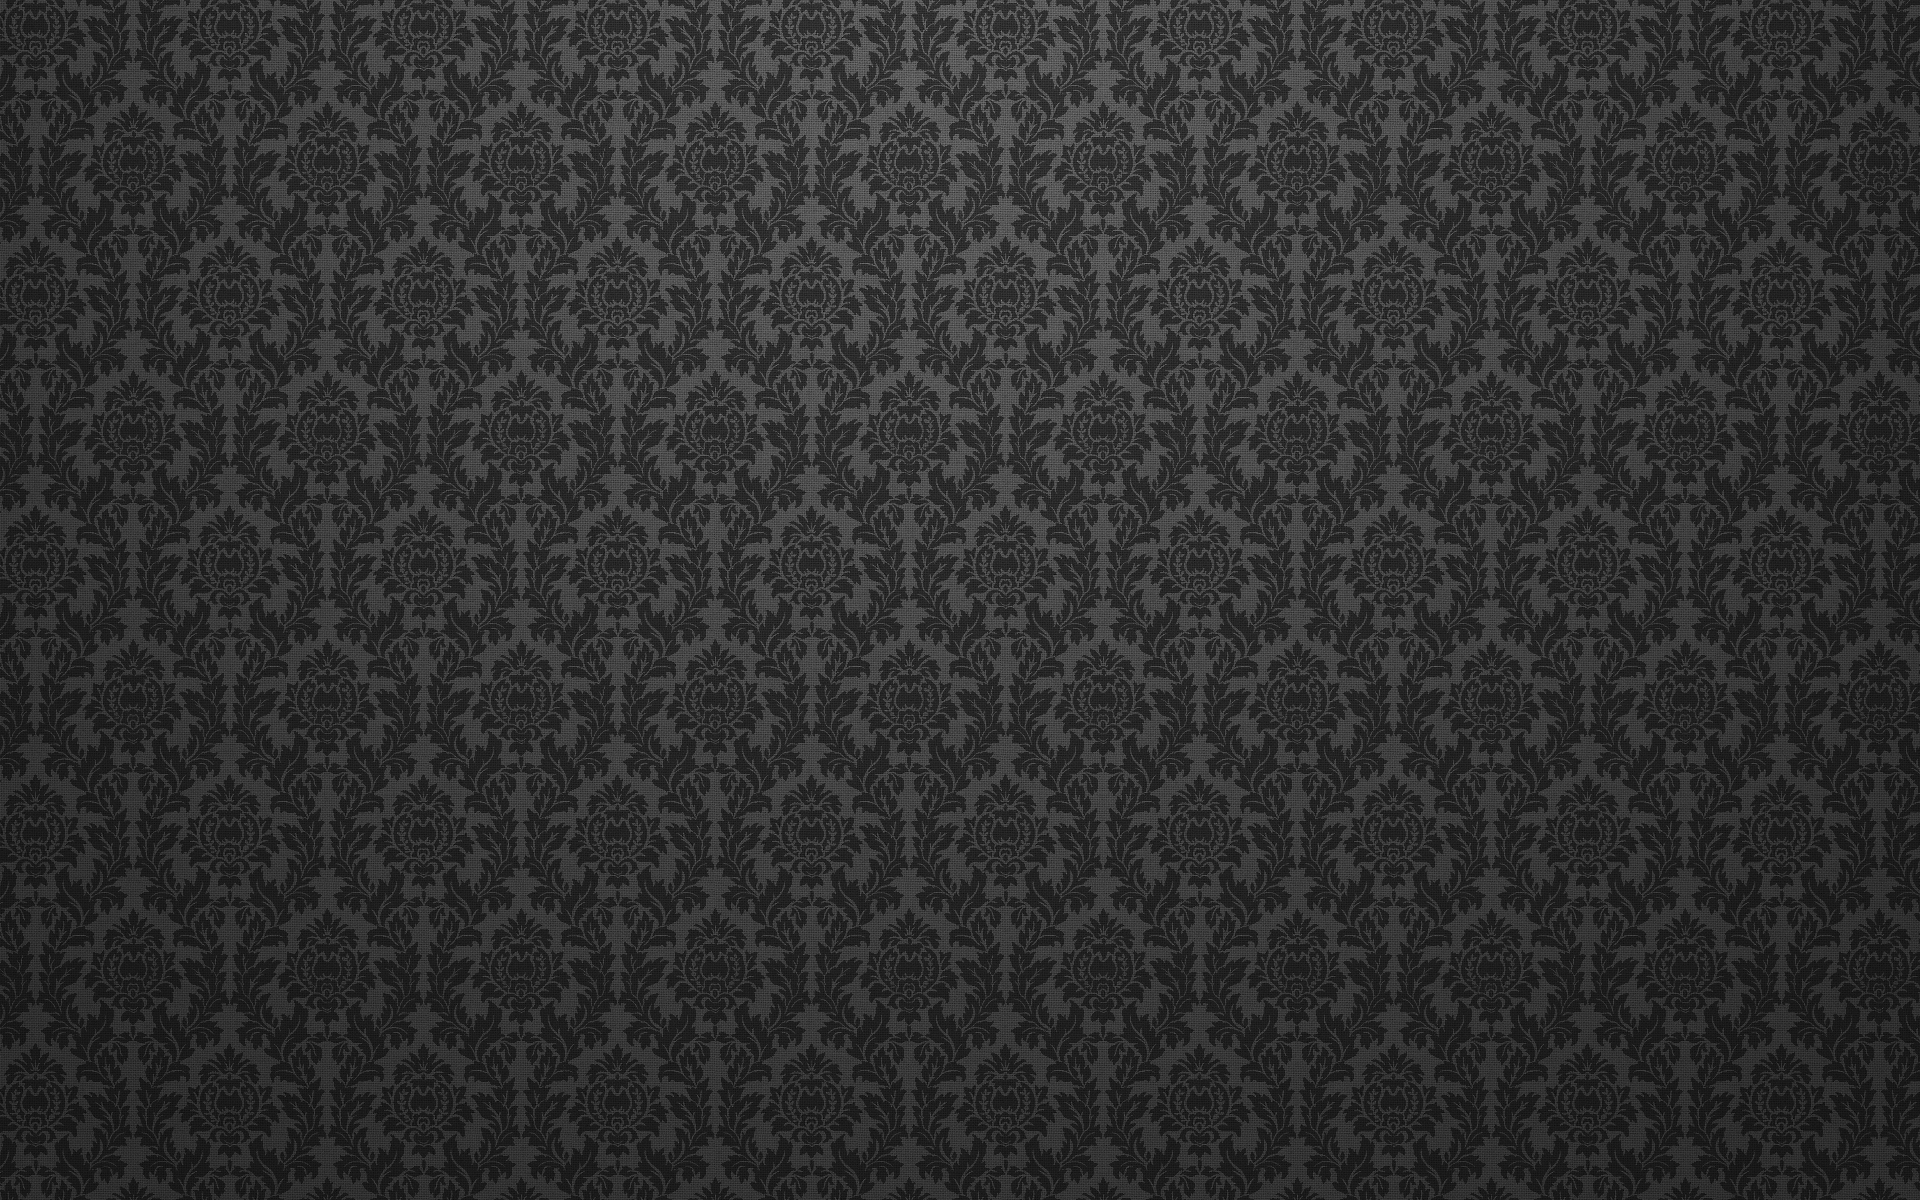 Desktop Wallpaper Patterns 1920x1200